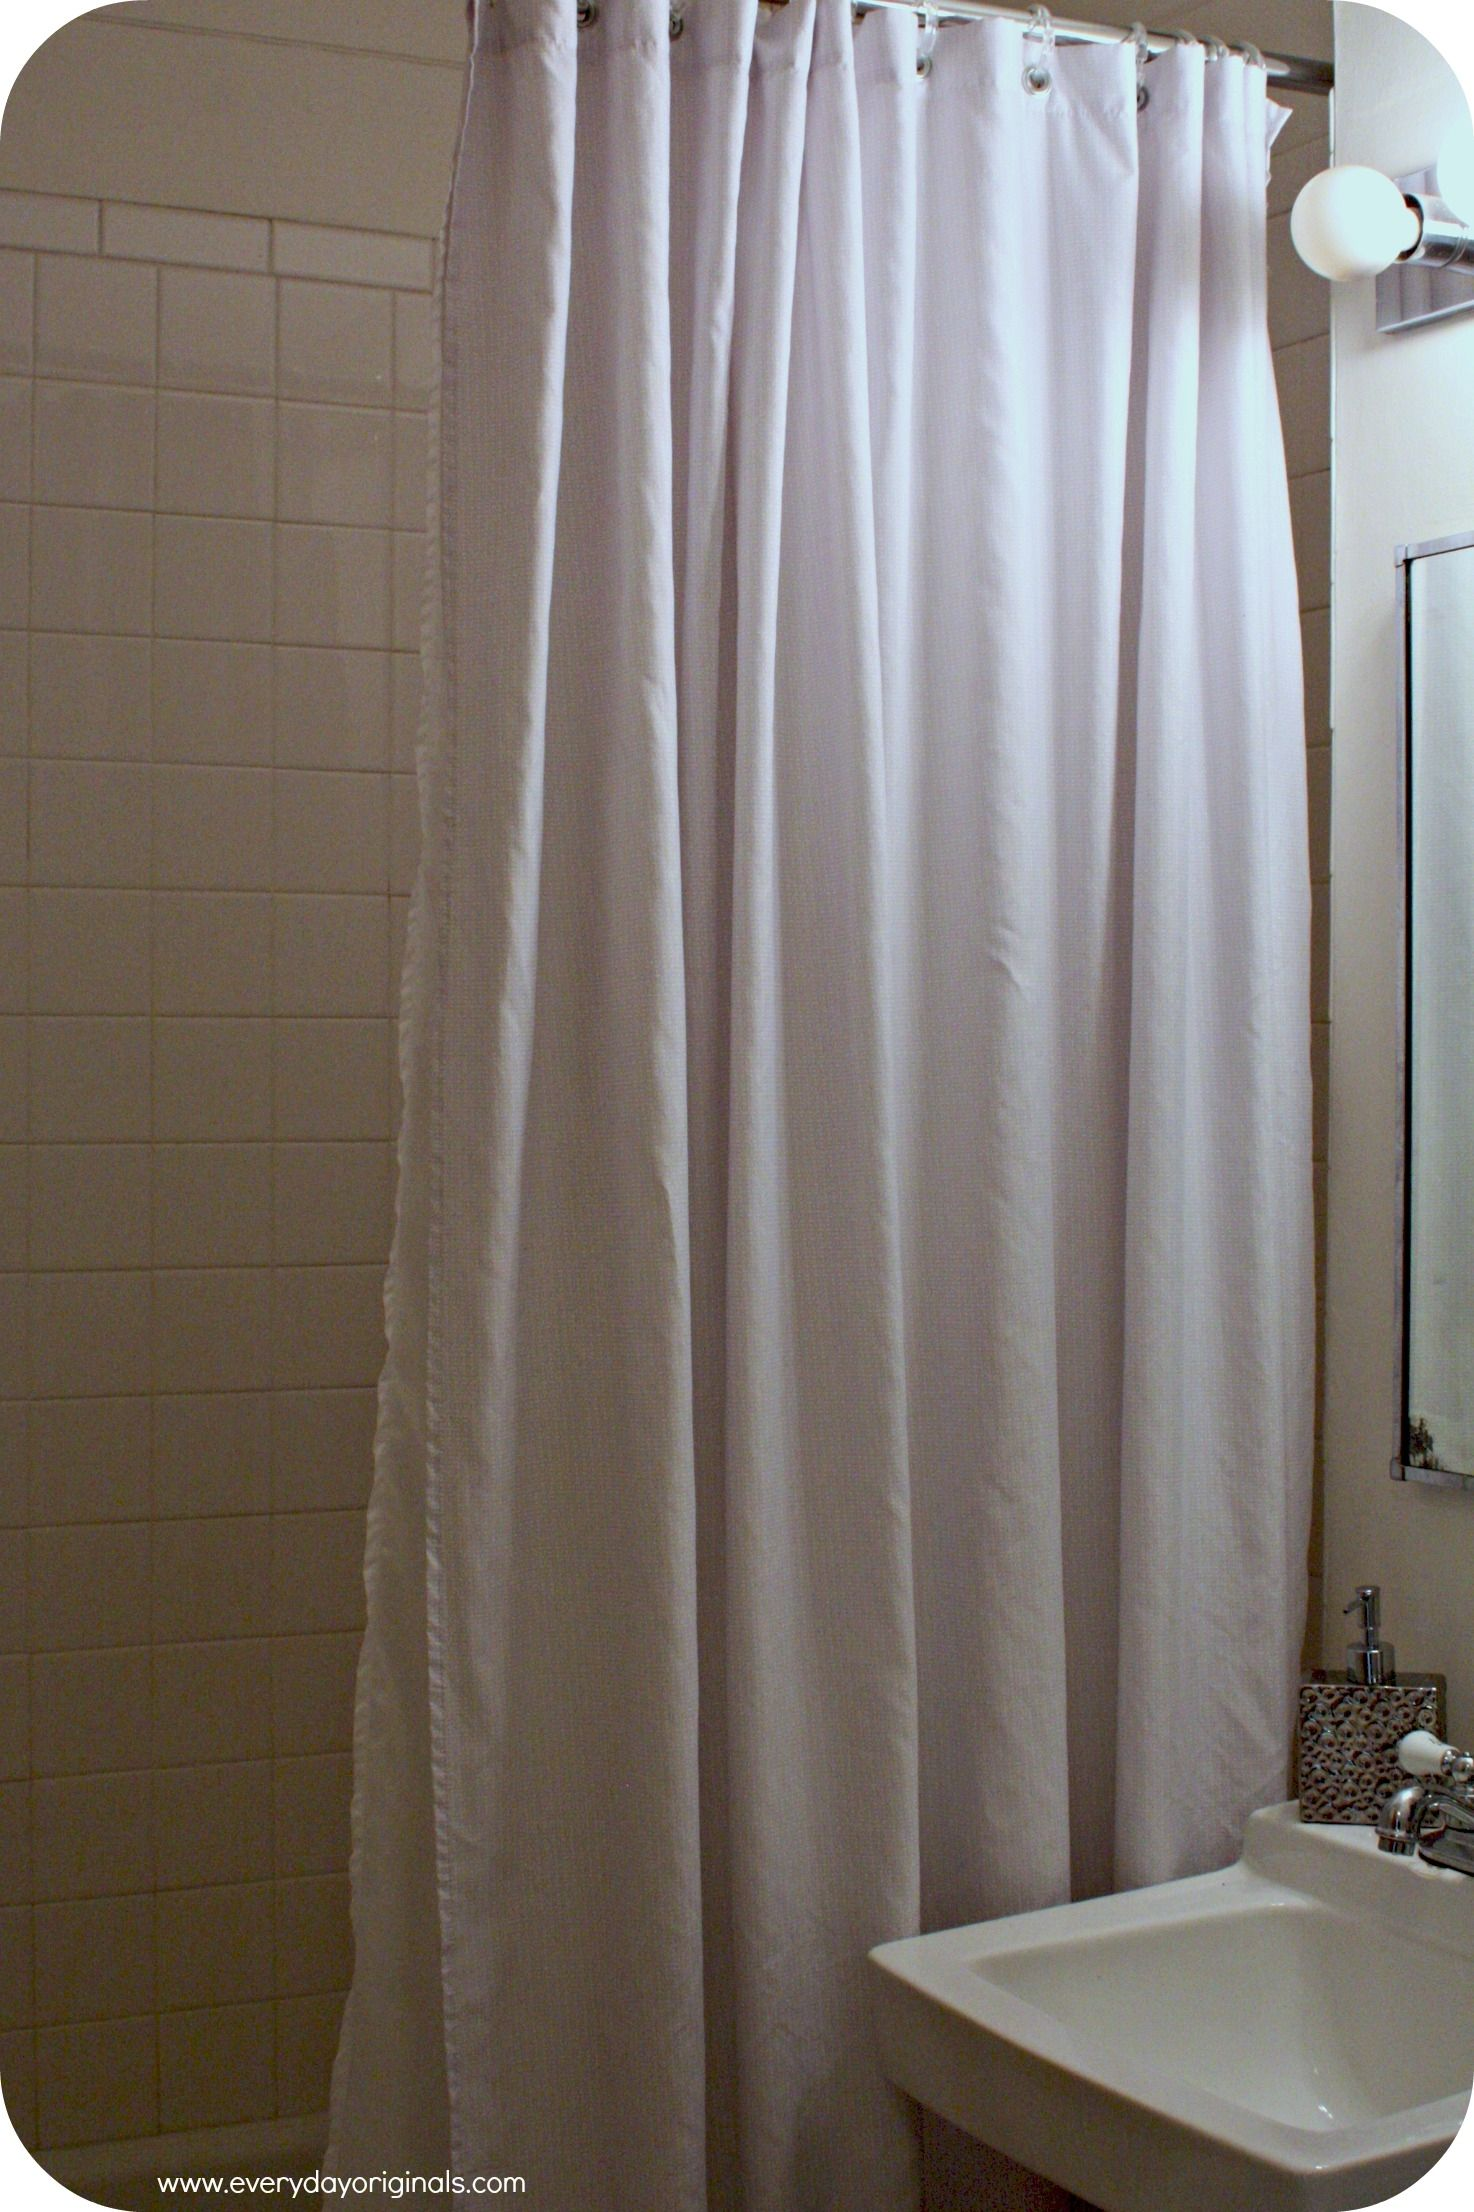 Explore Diy Shower, Bathroom Showers, And More! Ross Shower Curtains